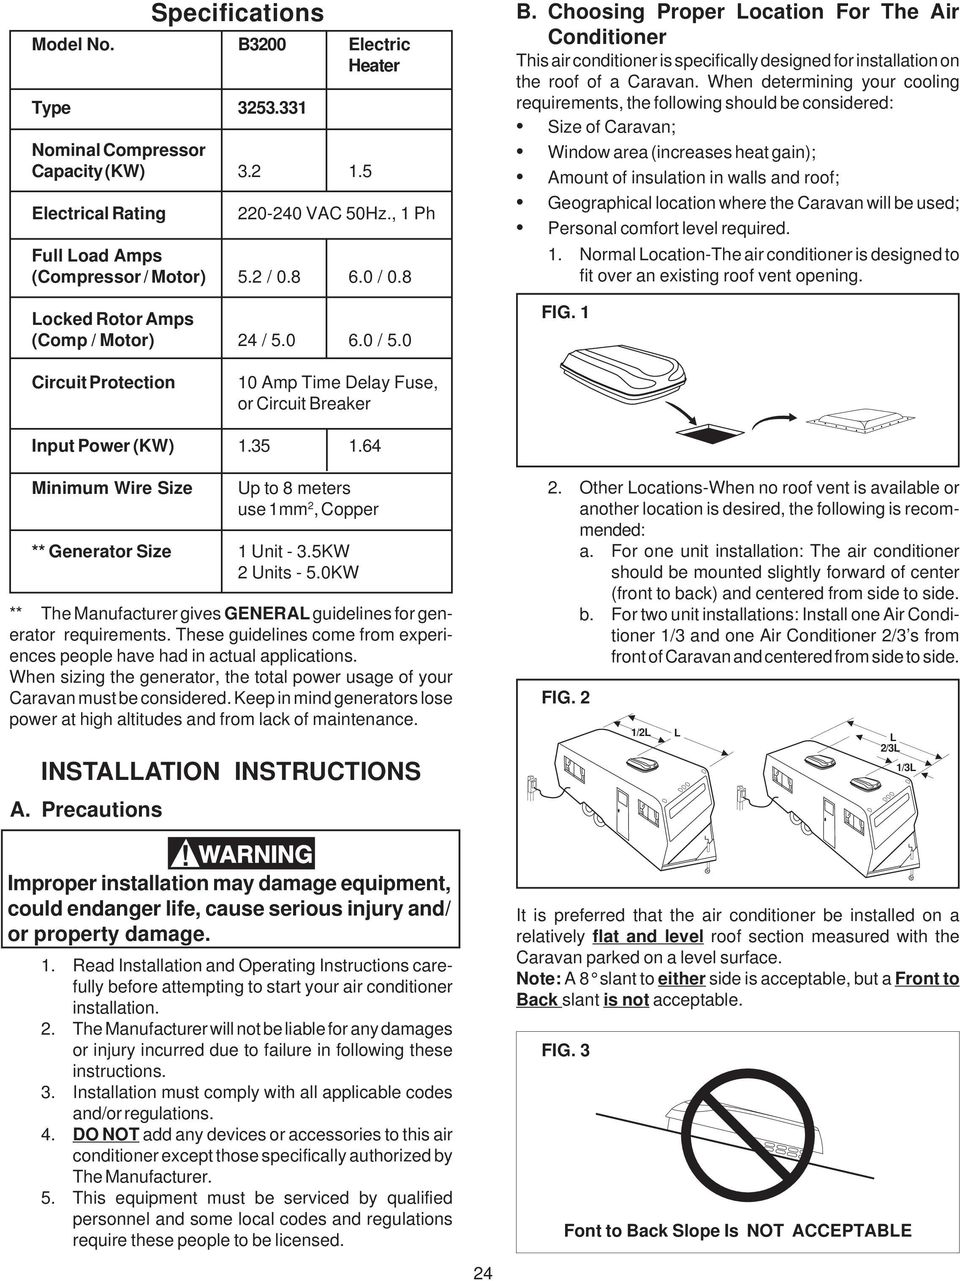 Model Roof Top Air Conditioner Caravan B3200 Type Through A Typical Electrical System Building Up The Wiring When Determining Your Cooling Requirements Following Should Be Considered Size Of